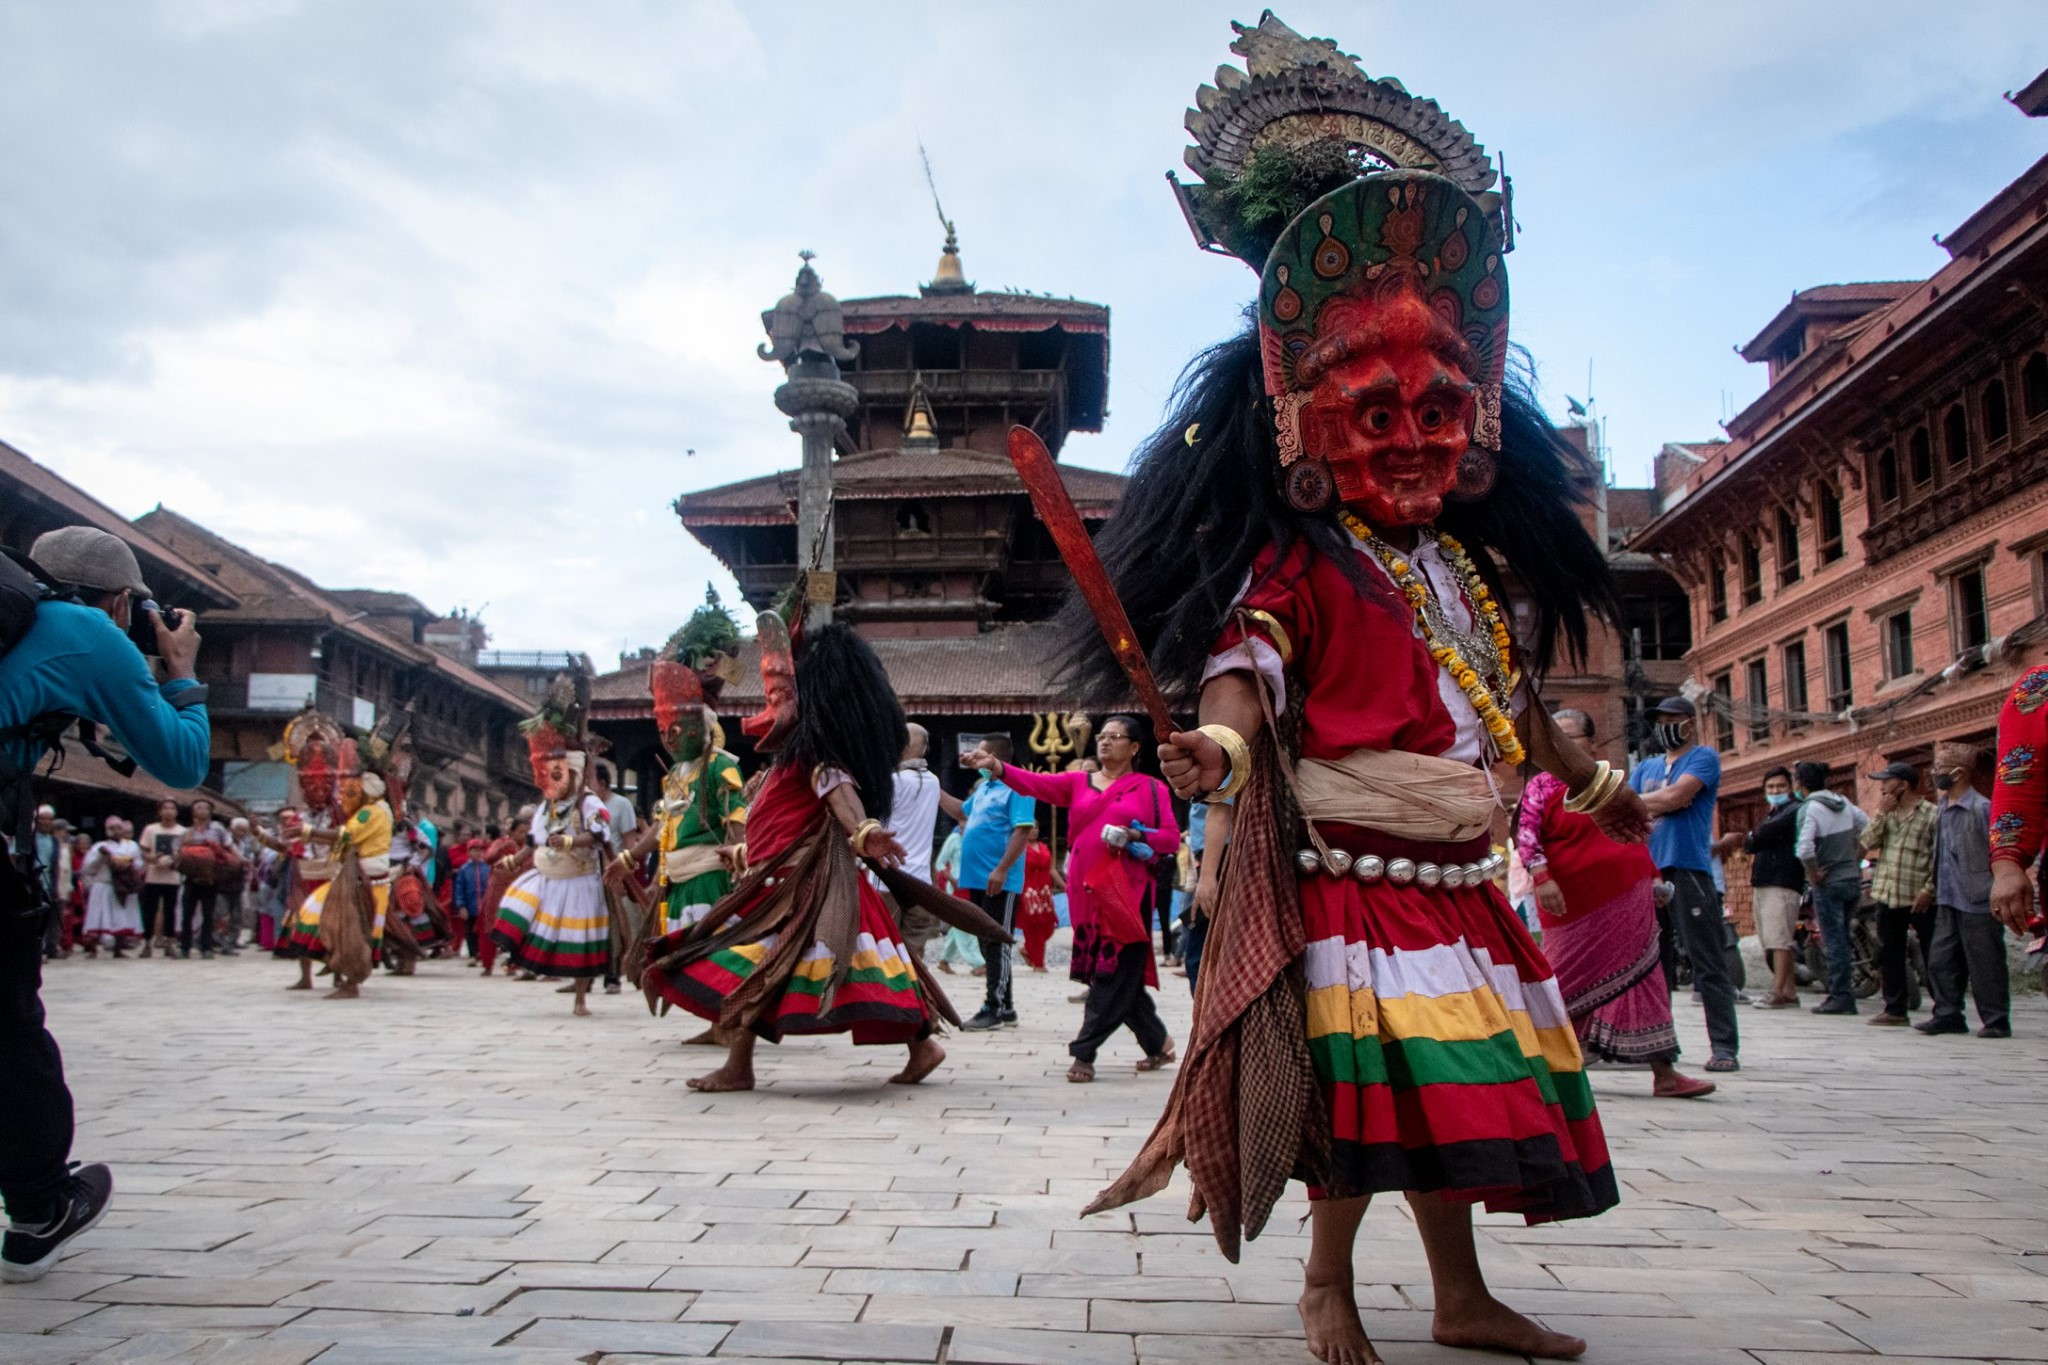 Along in the way to the craziest masked plus street dance of Nepal image